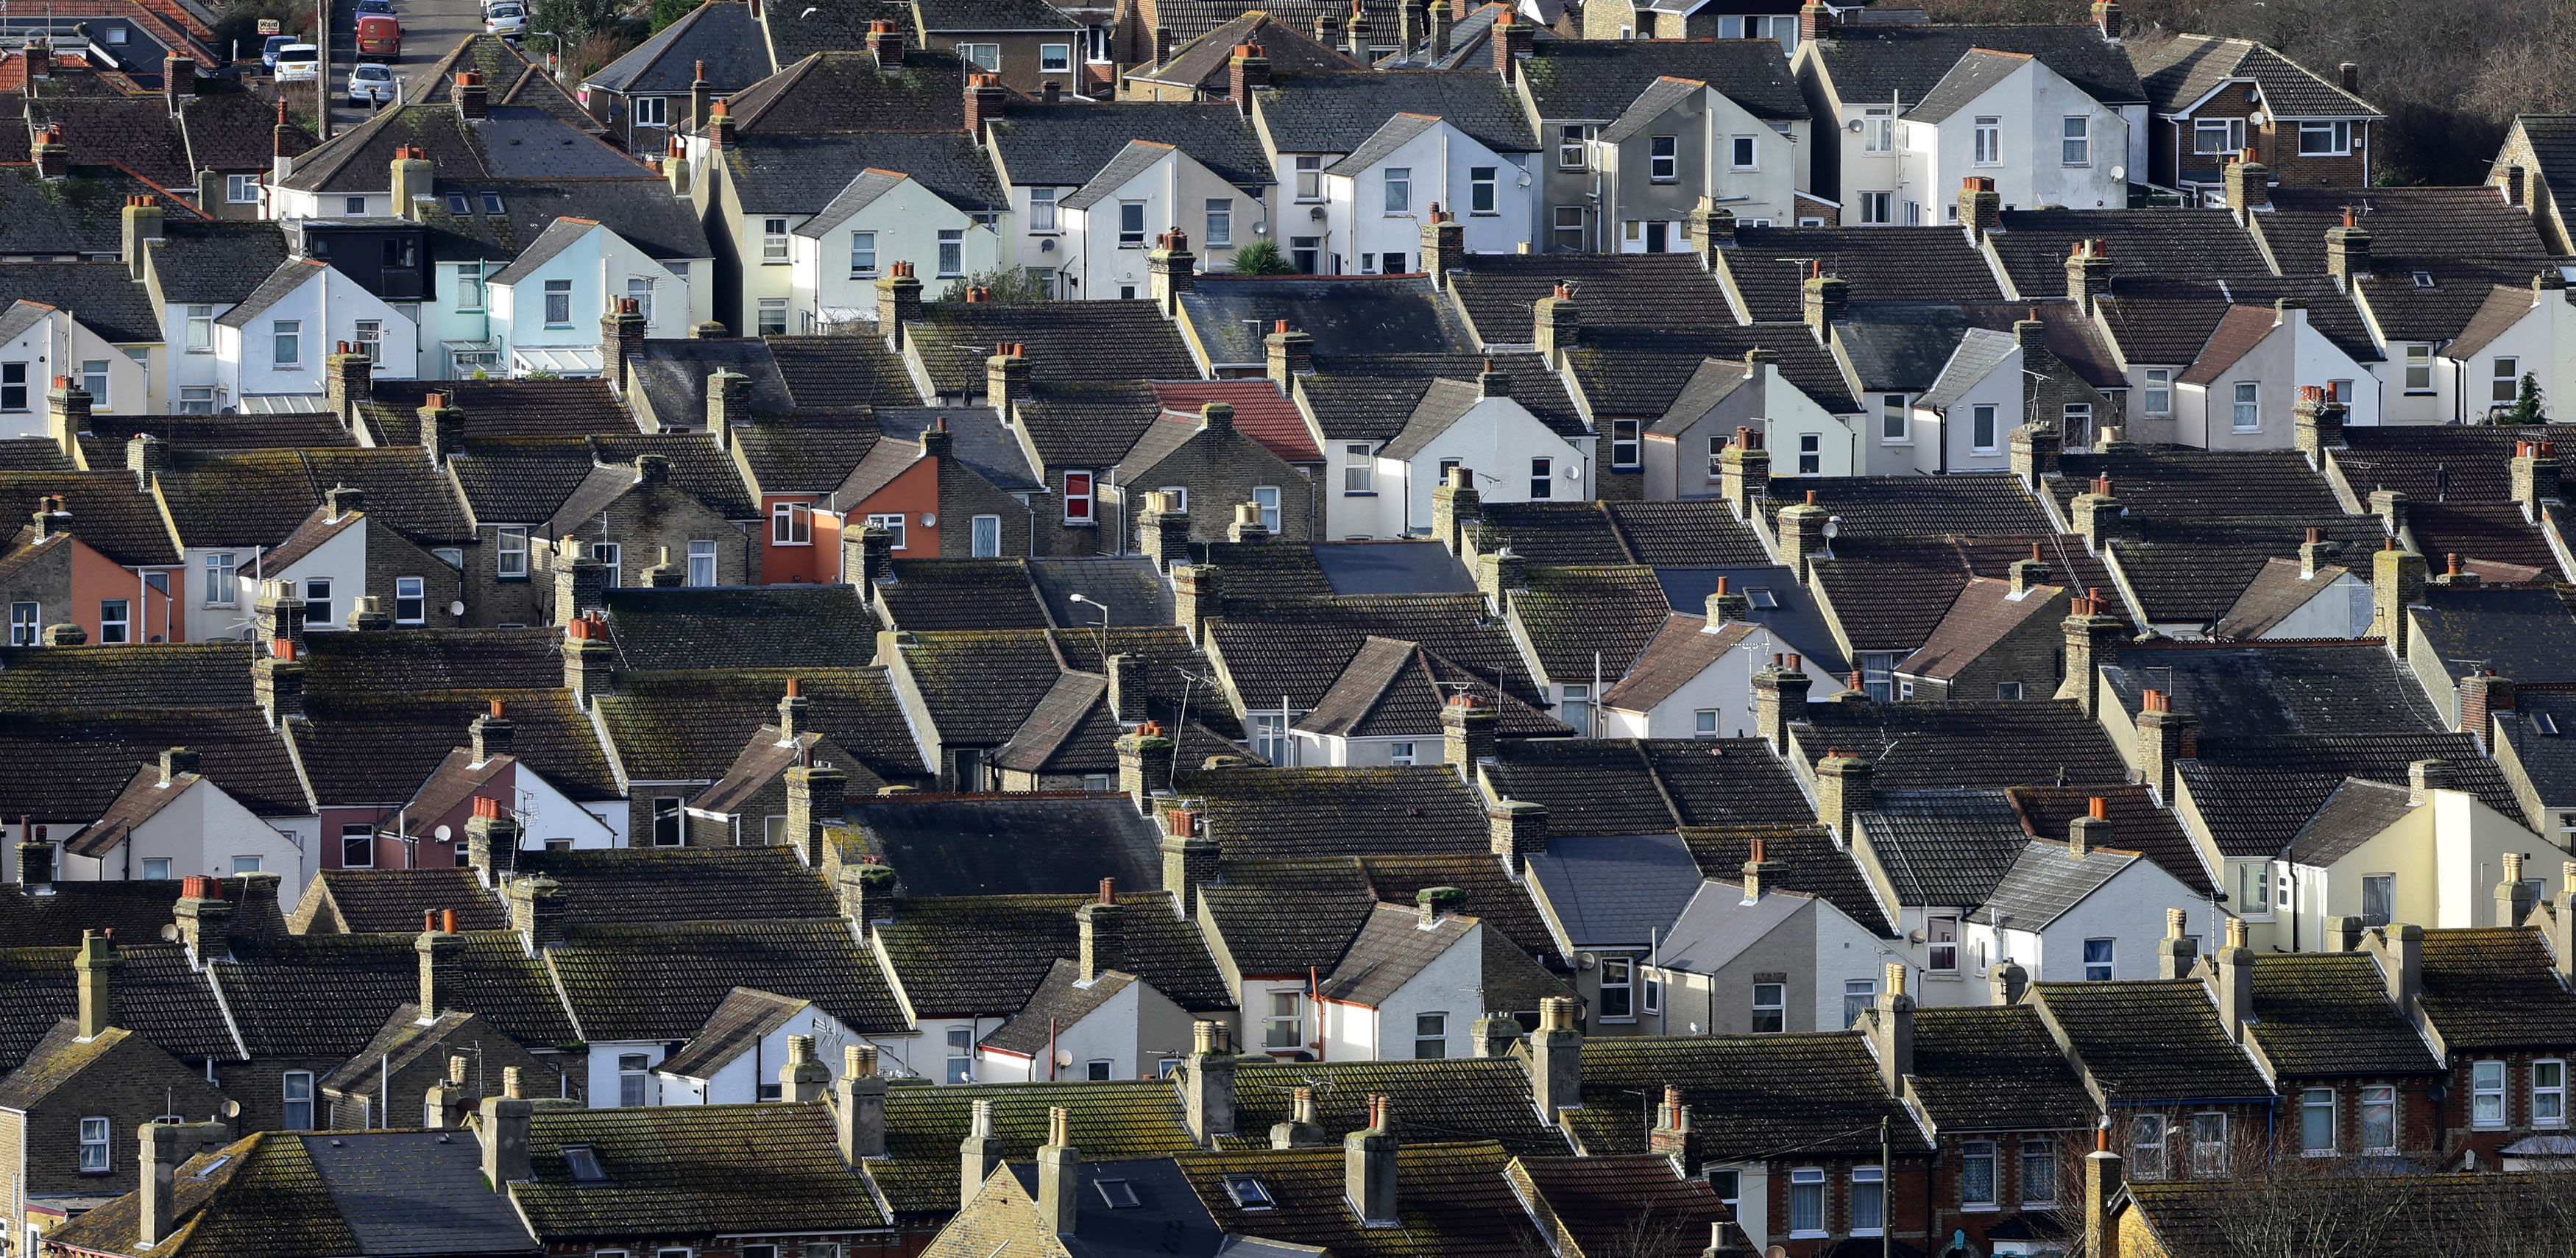 UK housing market 'on its knees'